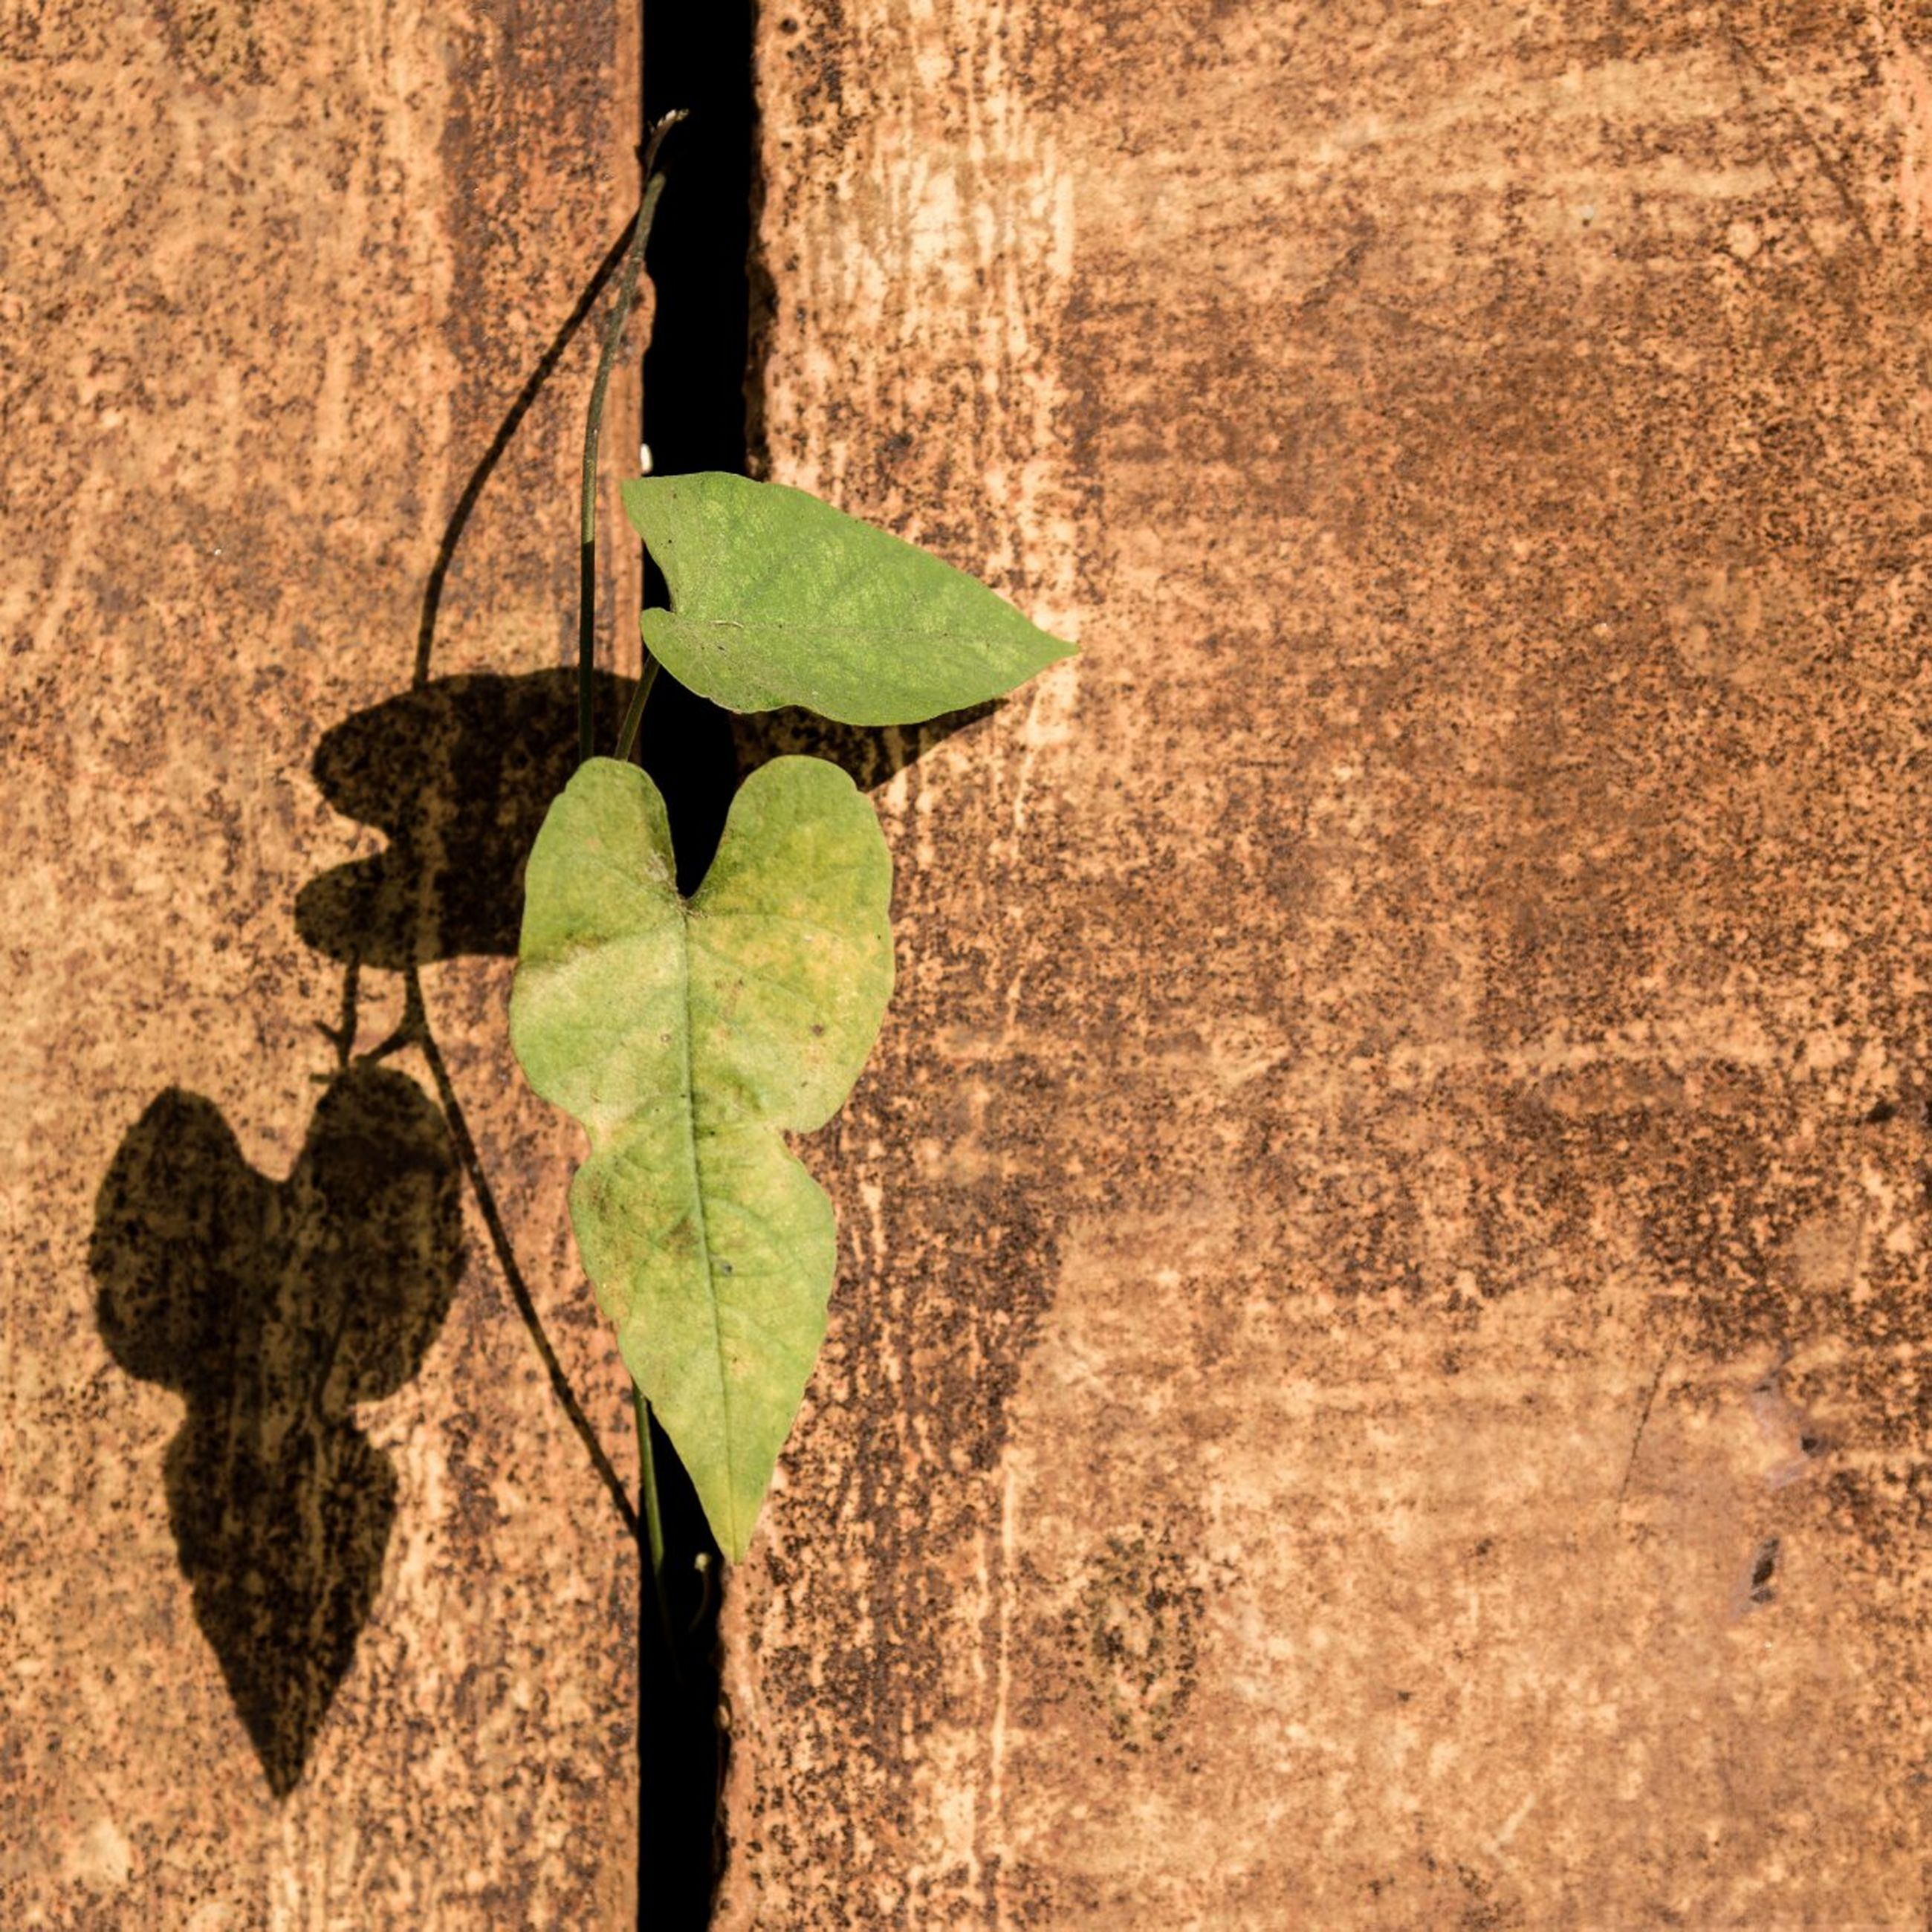 leaf, growth, wall - building feature, plant, green color, built structure, close-up, sunlight, shadow, growing, architecture, wall, textured, nature, day, brick wall, no people, outdoors, ivy, building exterior